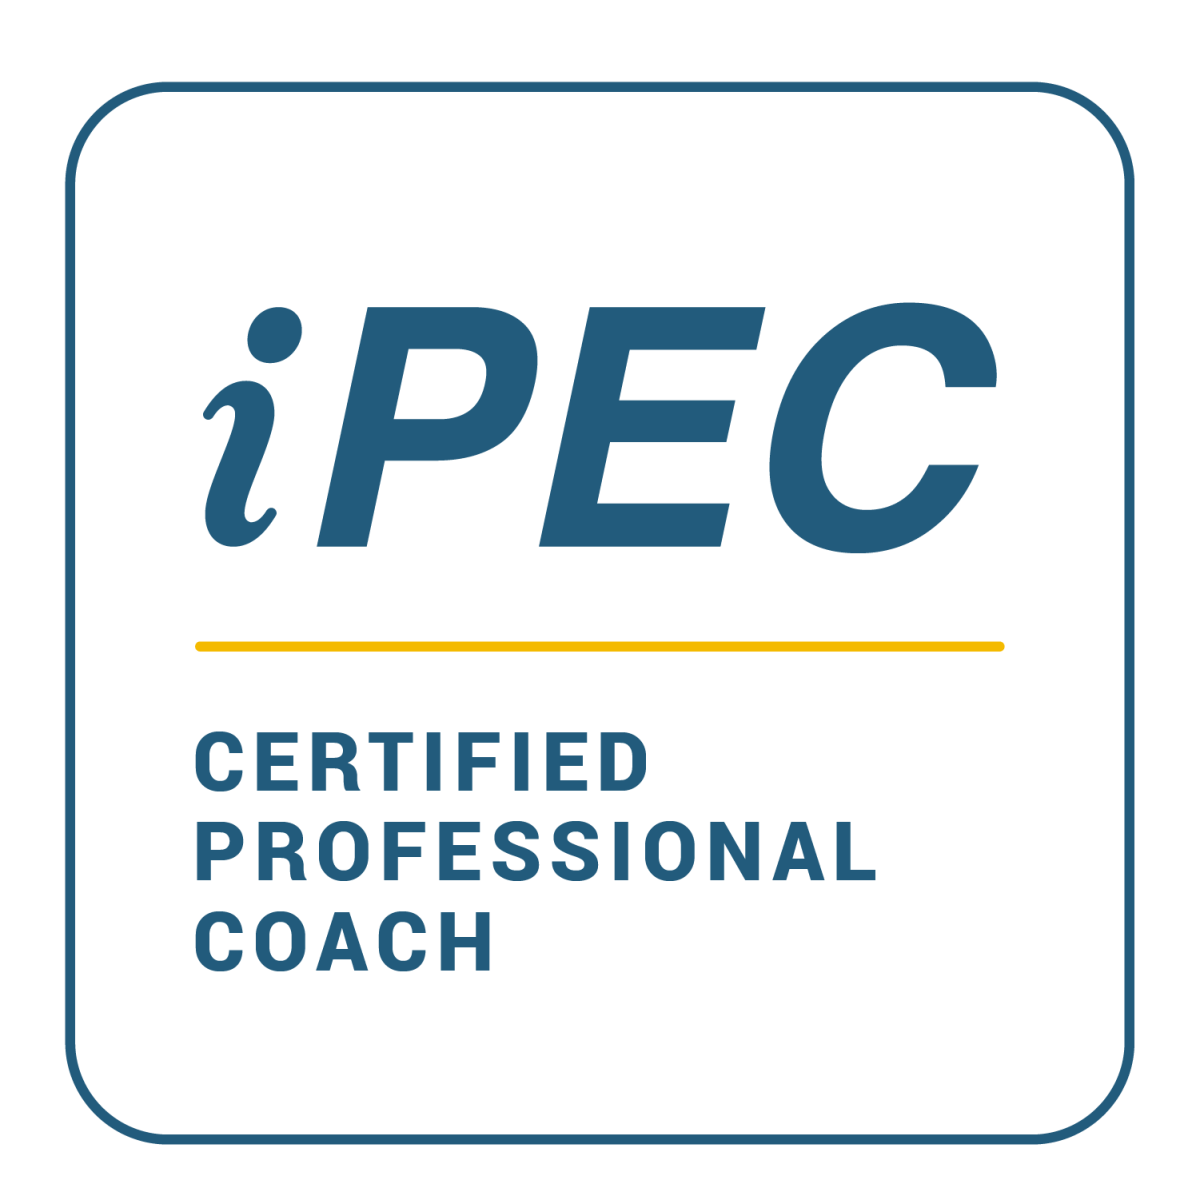 Mike Bird, Certified Professional Coach (CPC)